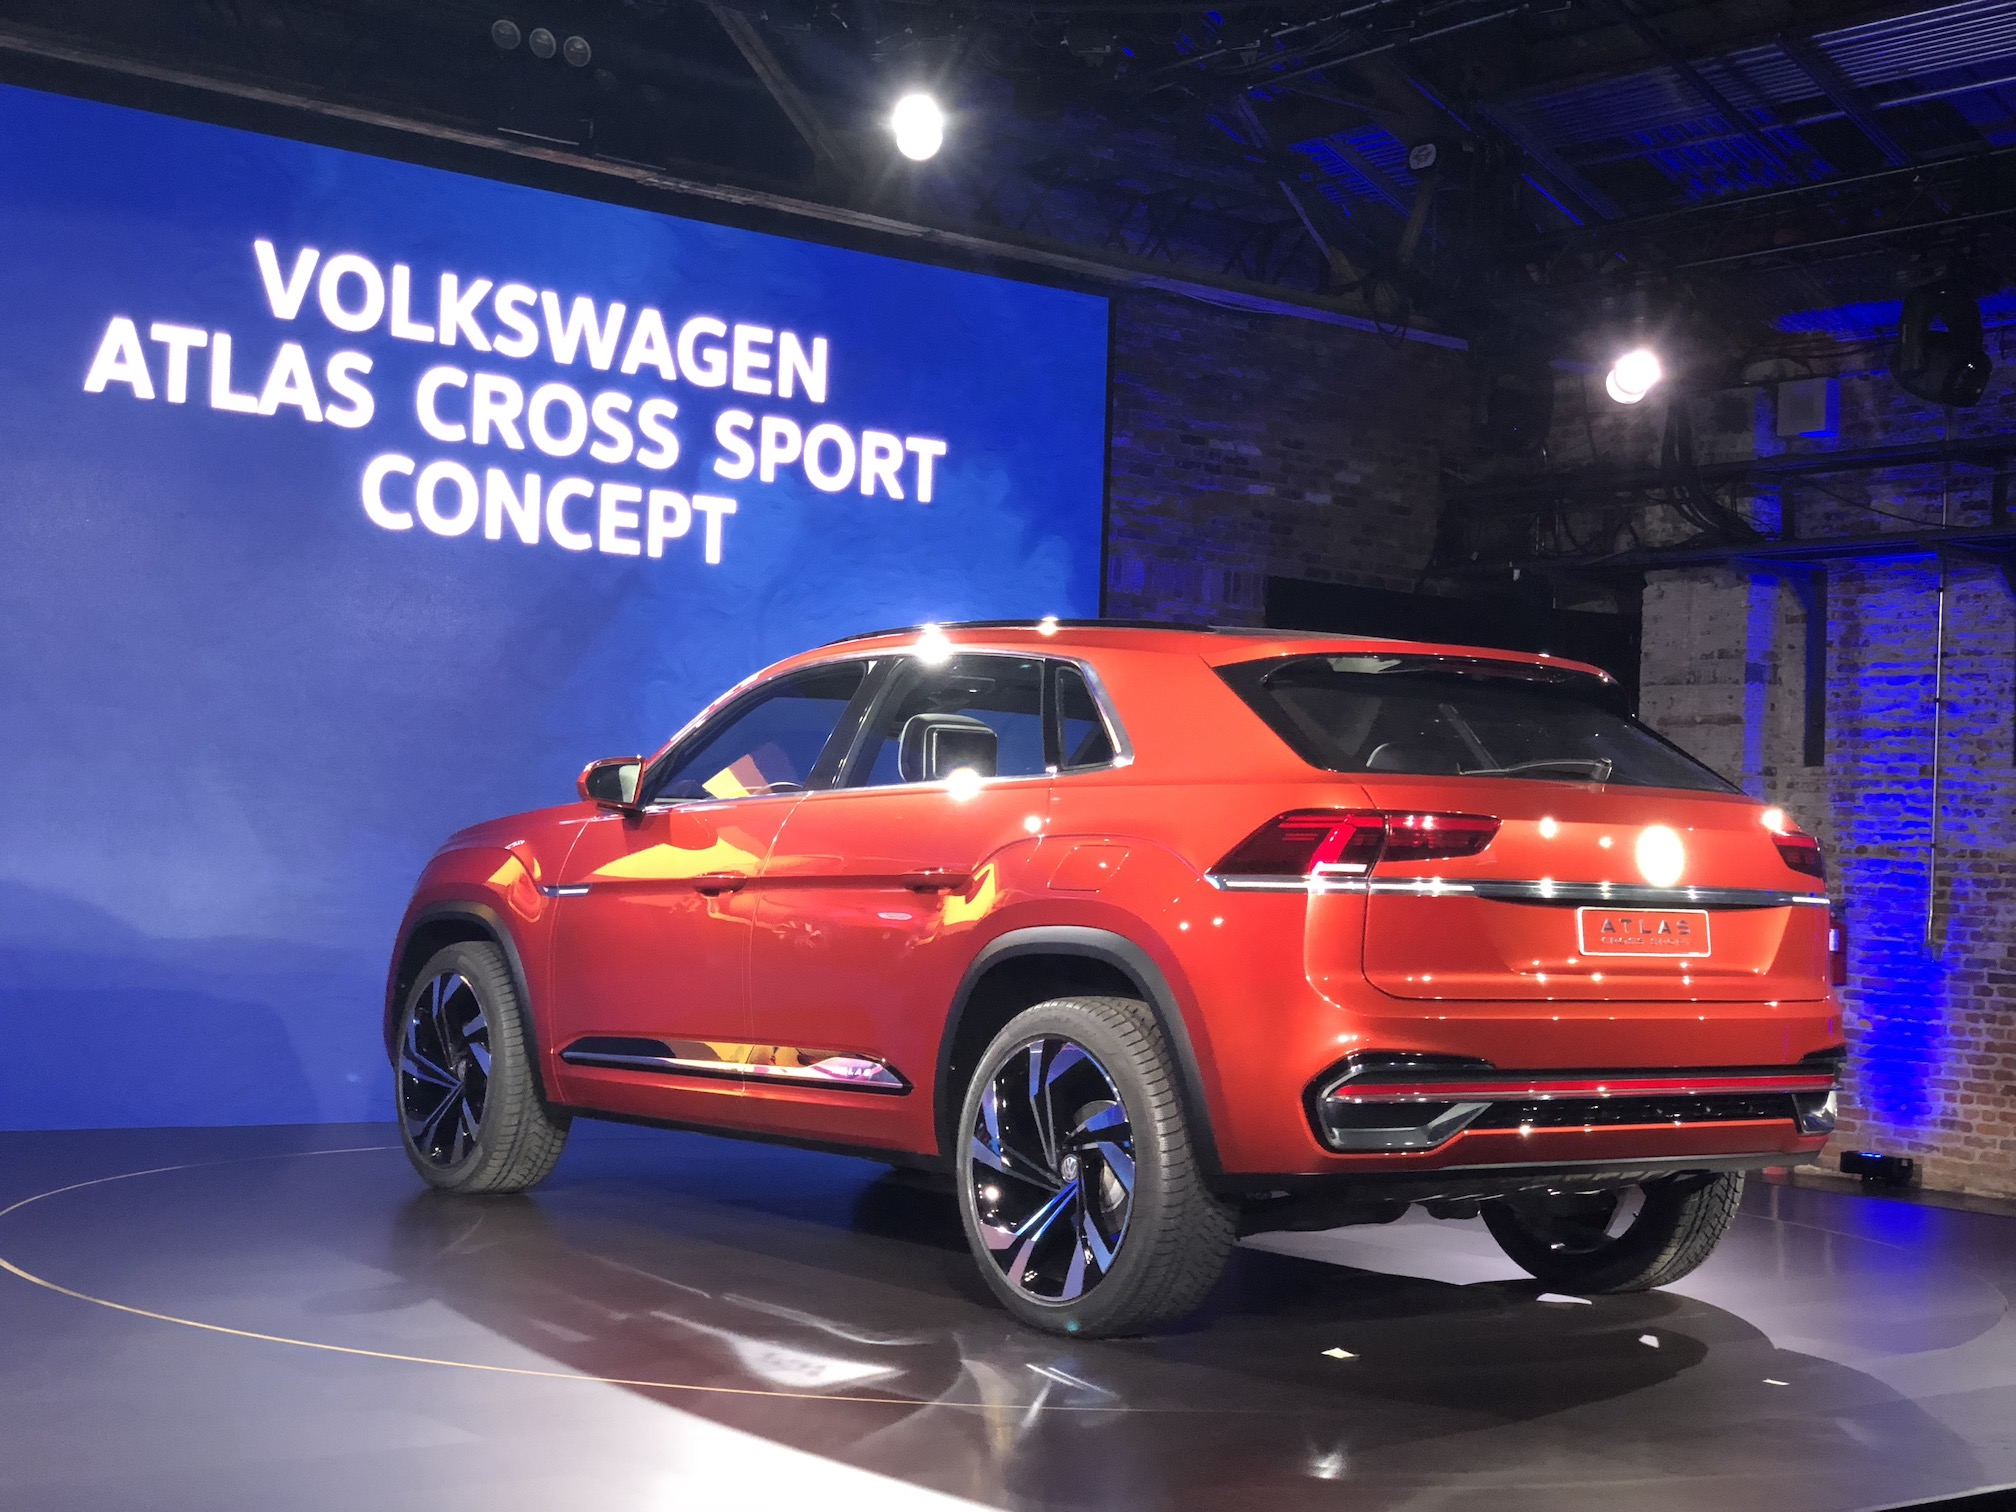 Volkswagen Atlas Cross Sport Concept Automotive Rhythms